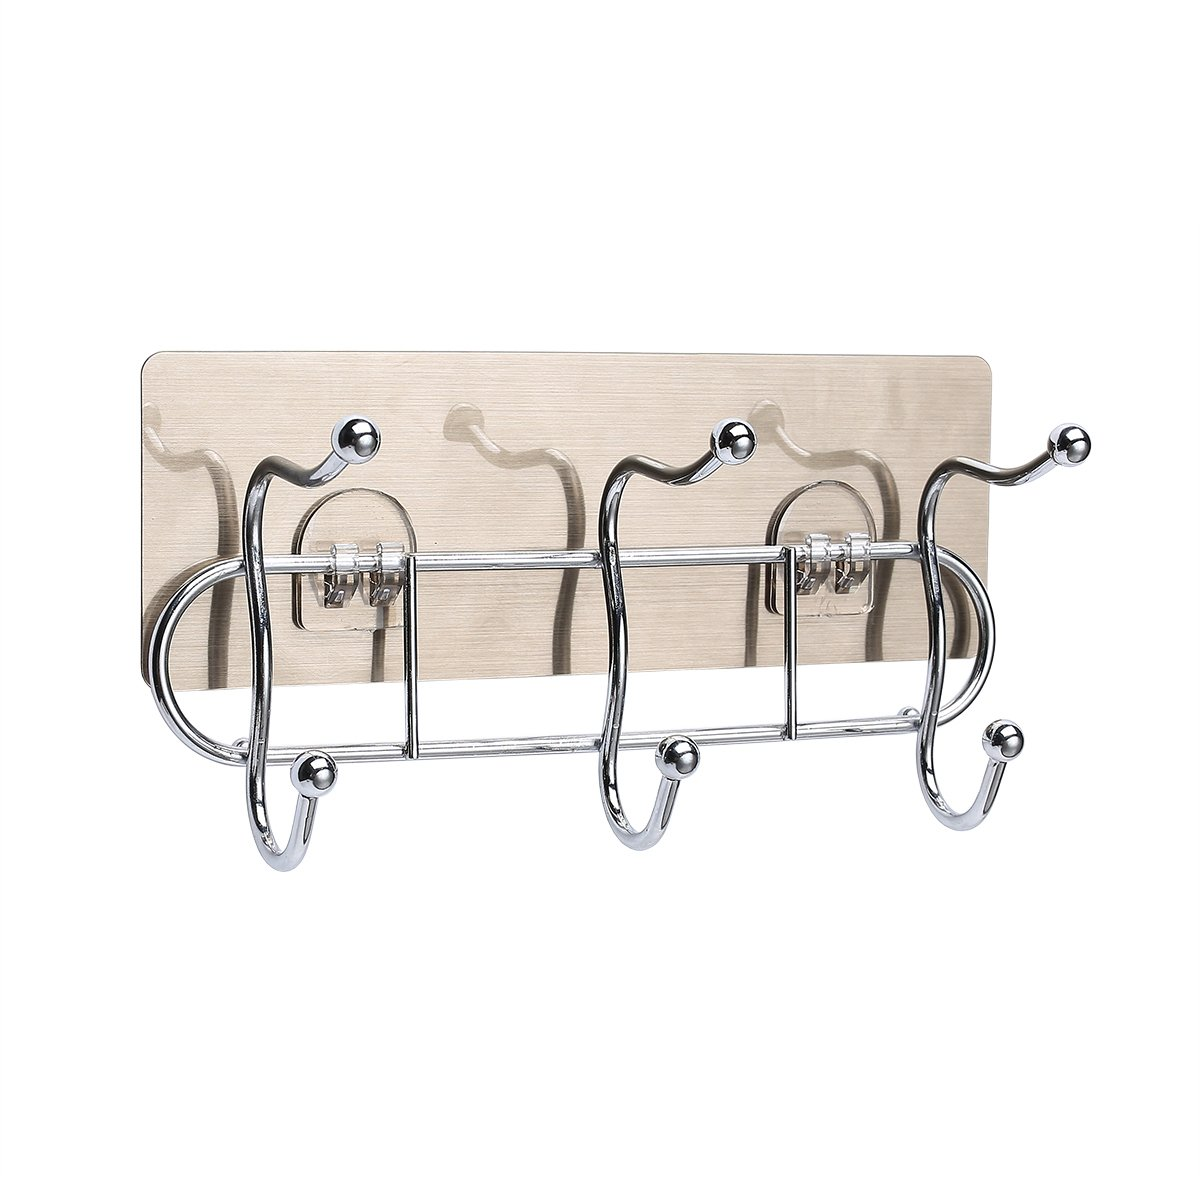 Metrekey Powerful Adhesive Hooks For Bathroom Wall Heavy Duty Towel Hanger Kitchen Door Multifunctional Key Holder Stainless Stell